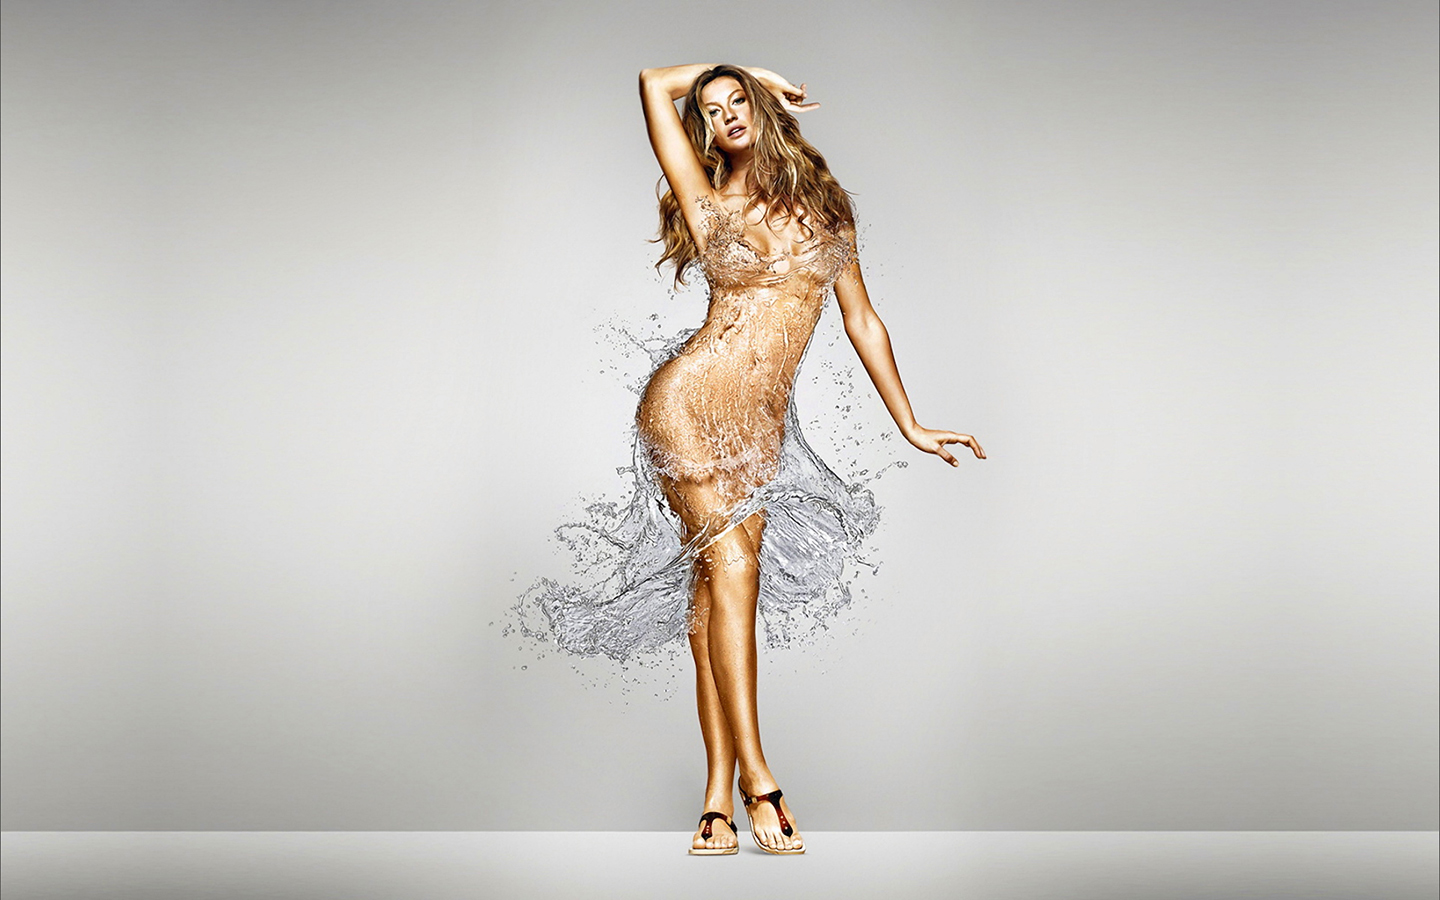 Gisele-Bundchen-Wallpapers1